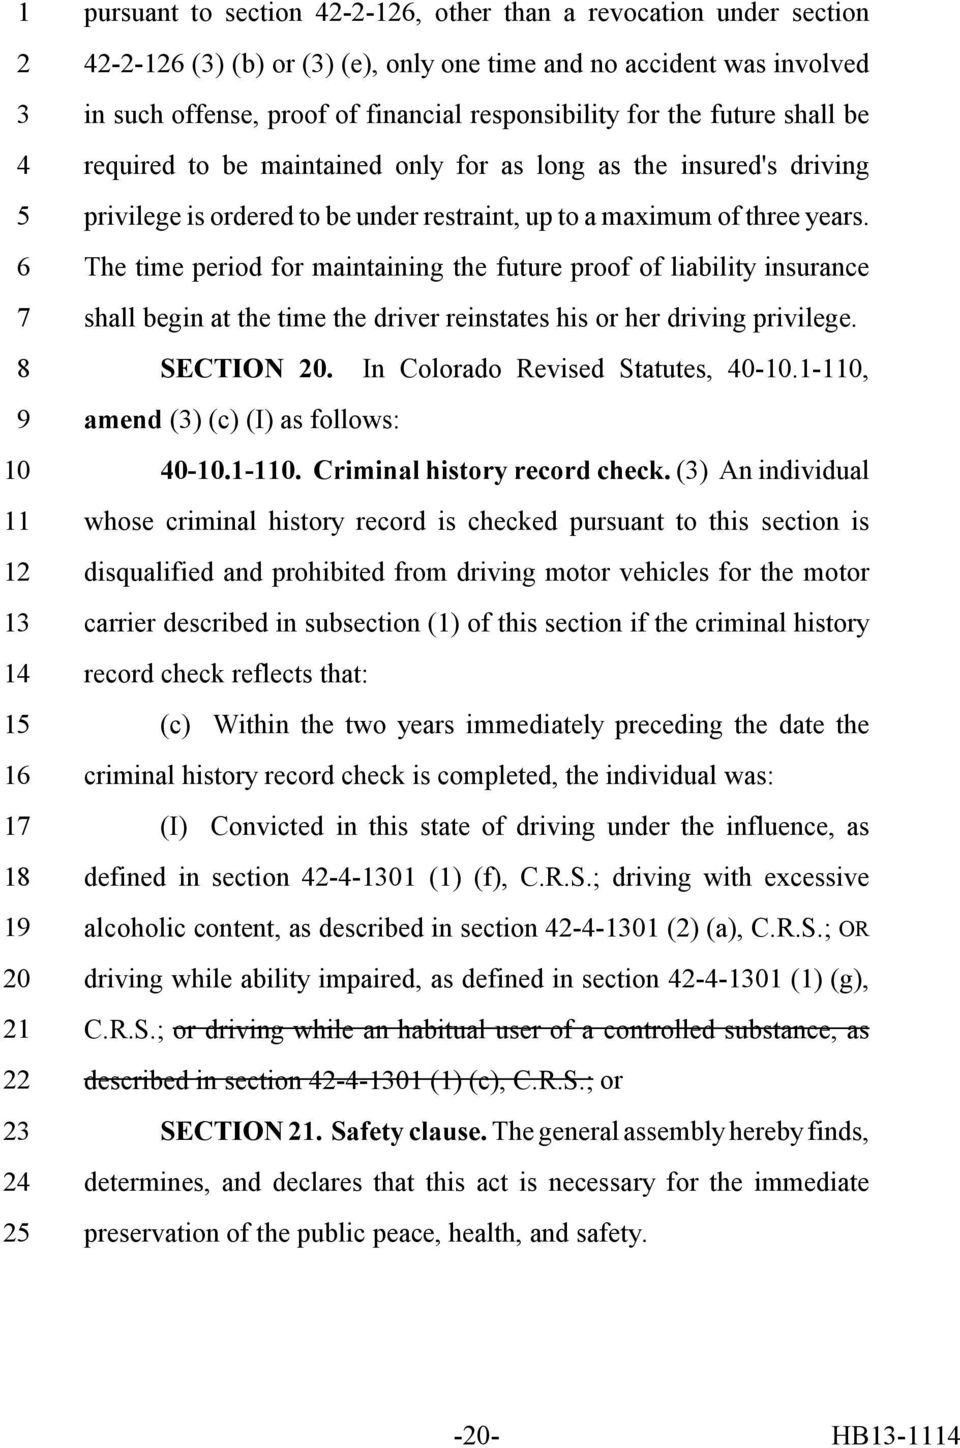 The time period for maintaining the future proof of liability insurance shall begin at the time the driver reinstates his or her driving privilege. SECTION 0. In Colorado Revised Statutes, 0-.